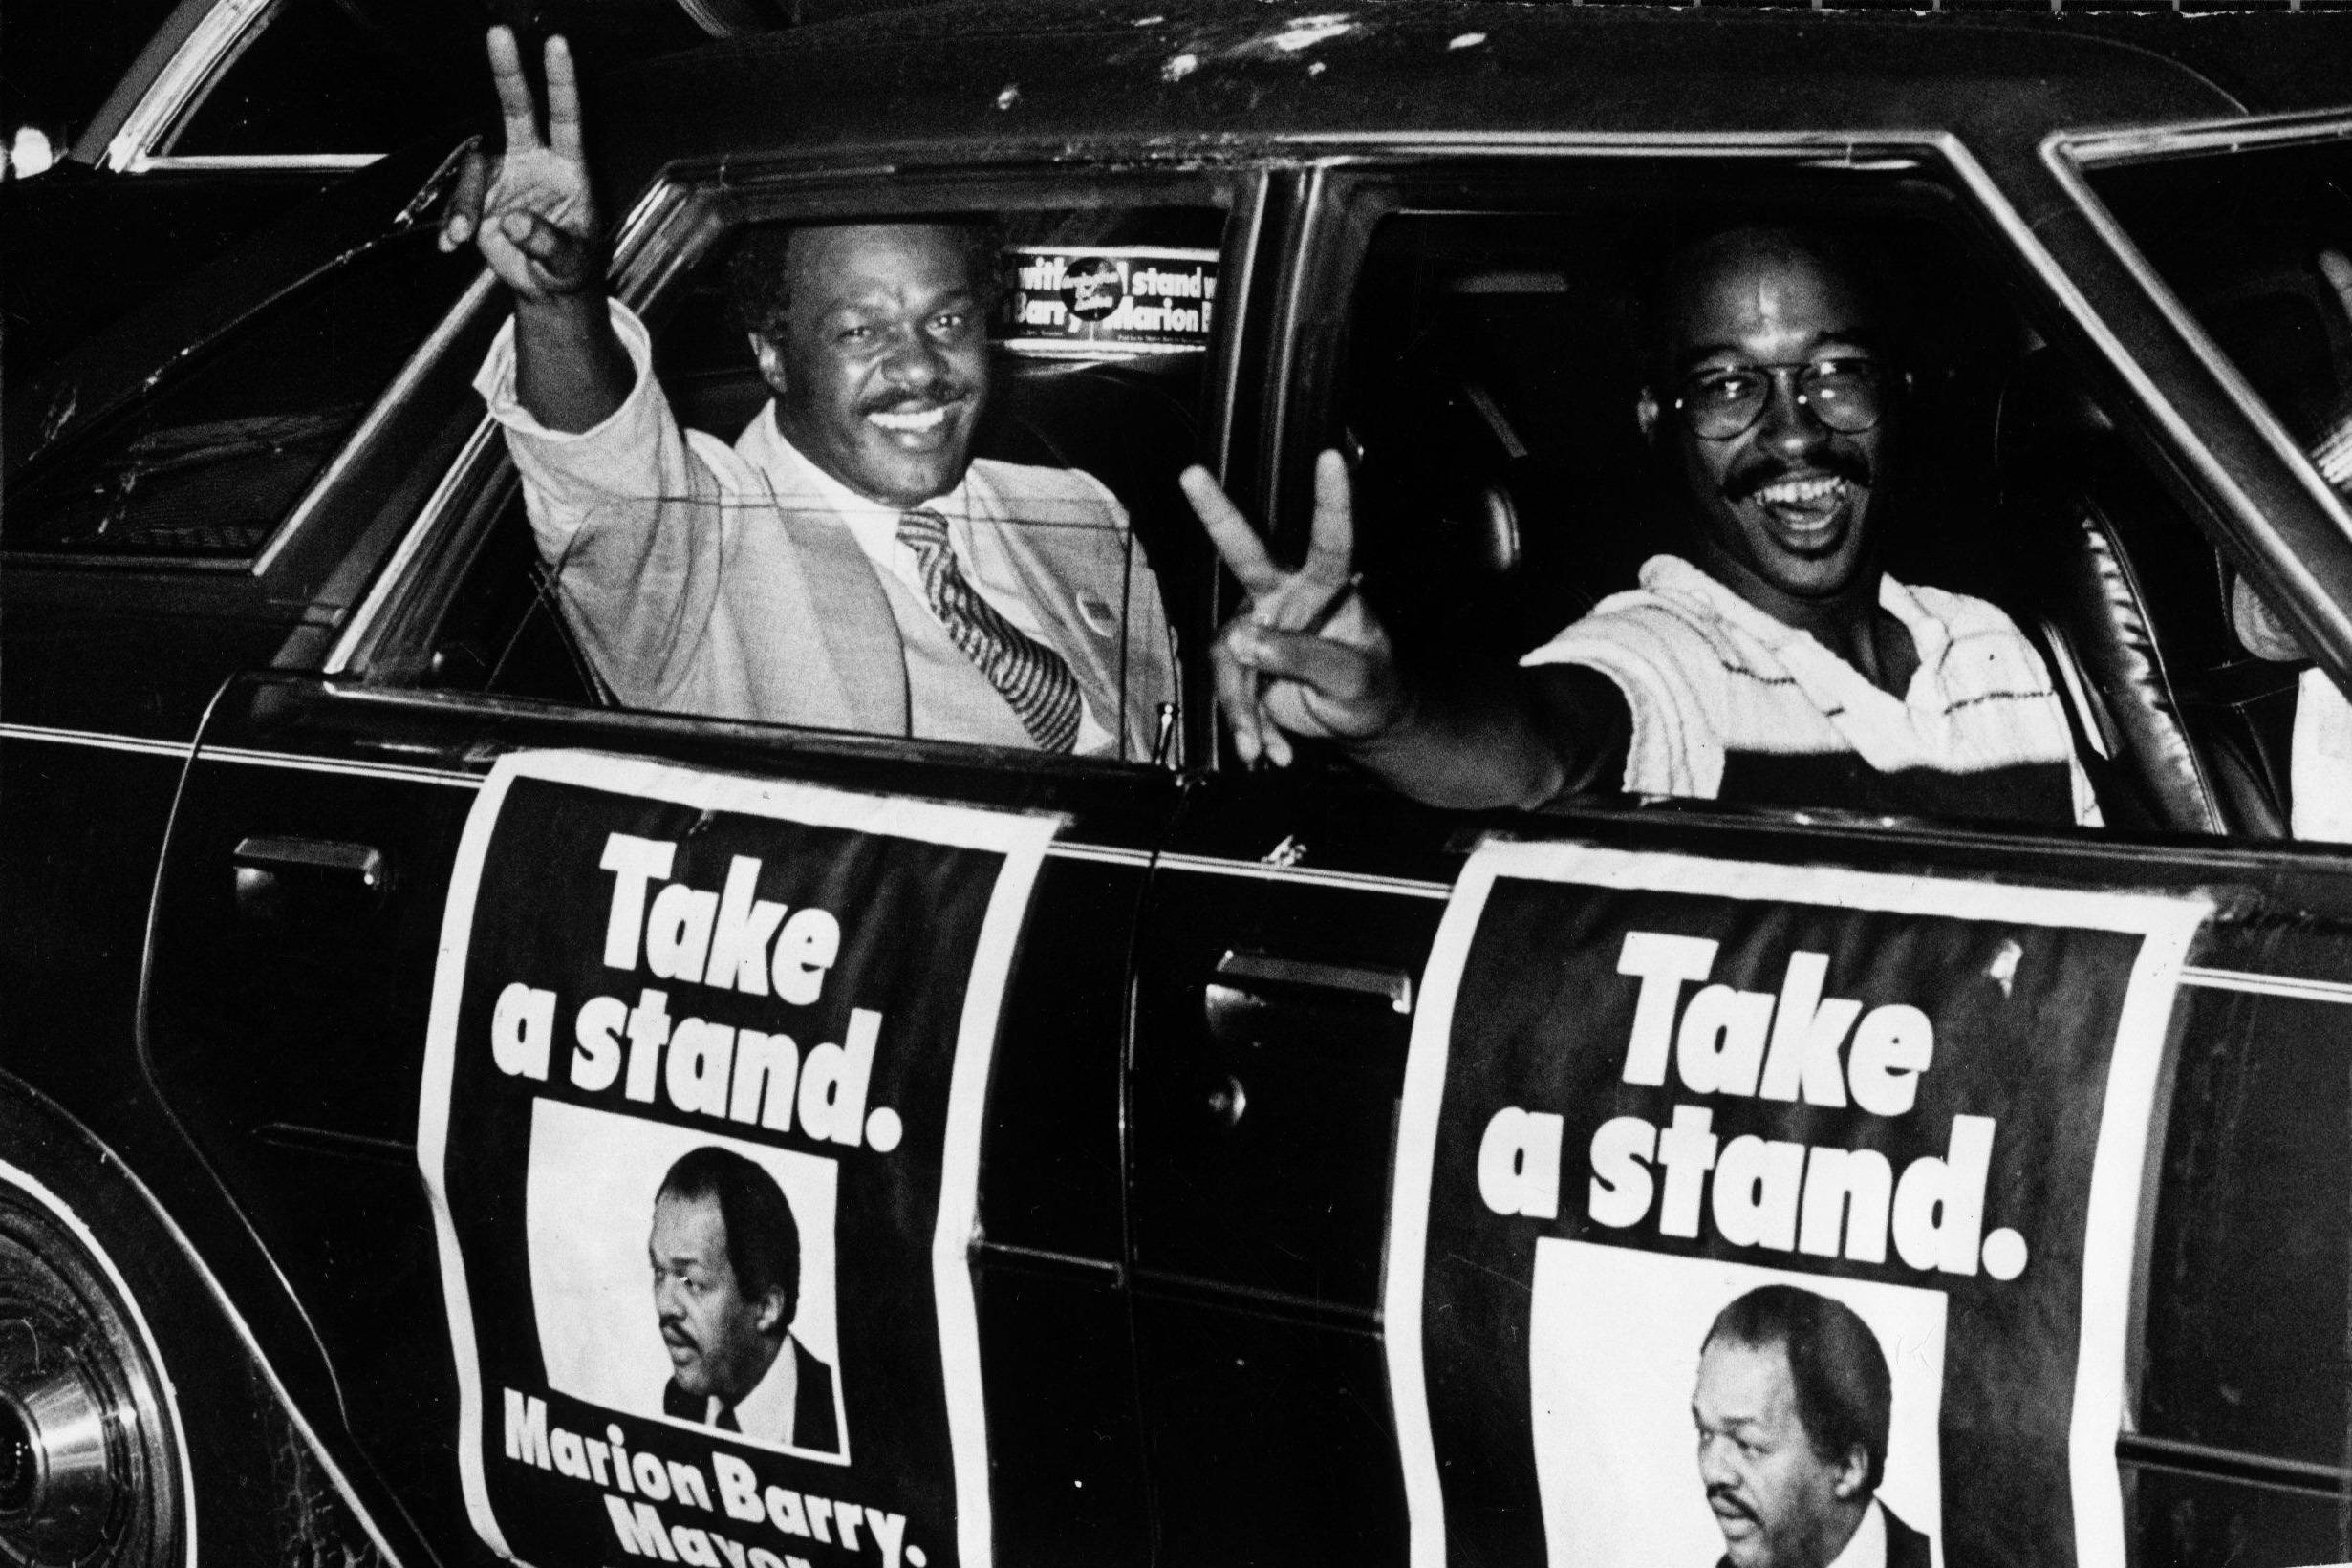 Take a Stand - In 1978, Barry asked Washington voters to take a stand. They did, and helped him defeat incumbent Mayor Walter Washington.   (Photo: James A. Parcell/The Washington Post via Getty Images)